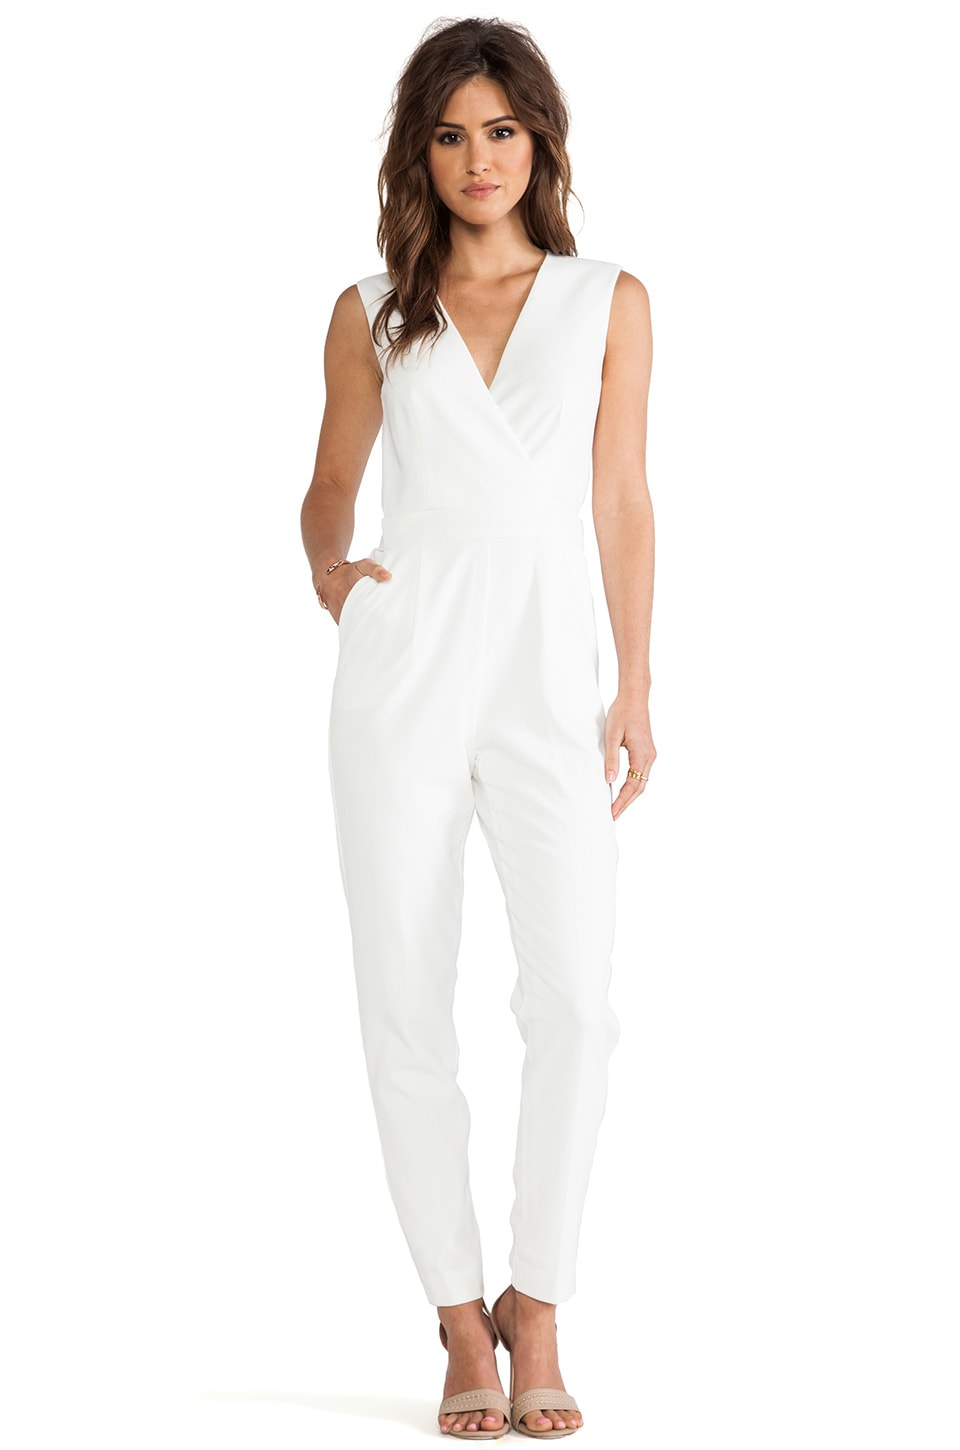 Trina Turk Lindsay Jumpsuit in Whitewash